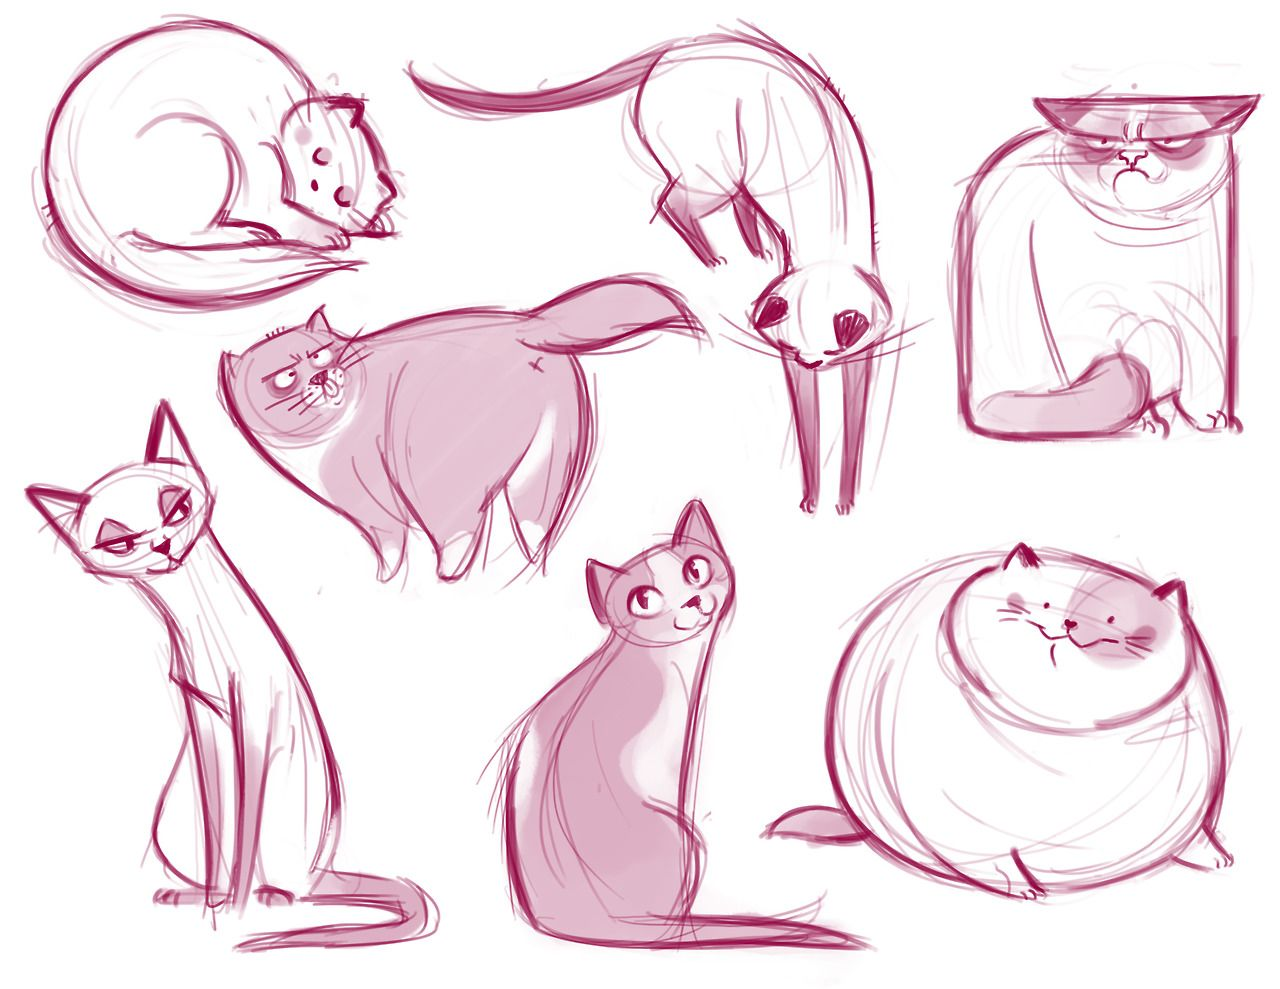 1280x989 If You Like Cat Illustrations, Check Out Our Post About Daily Cat